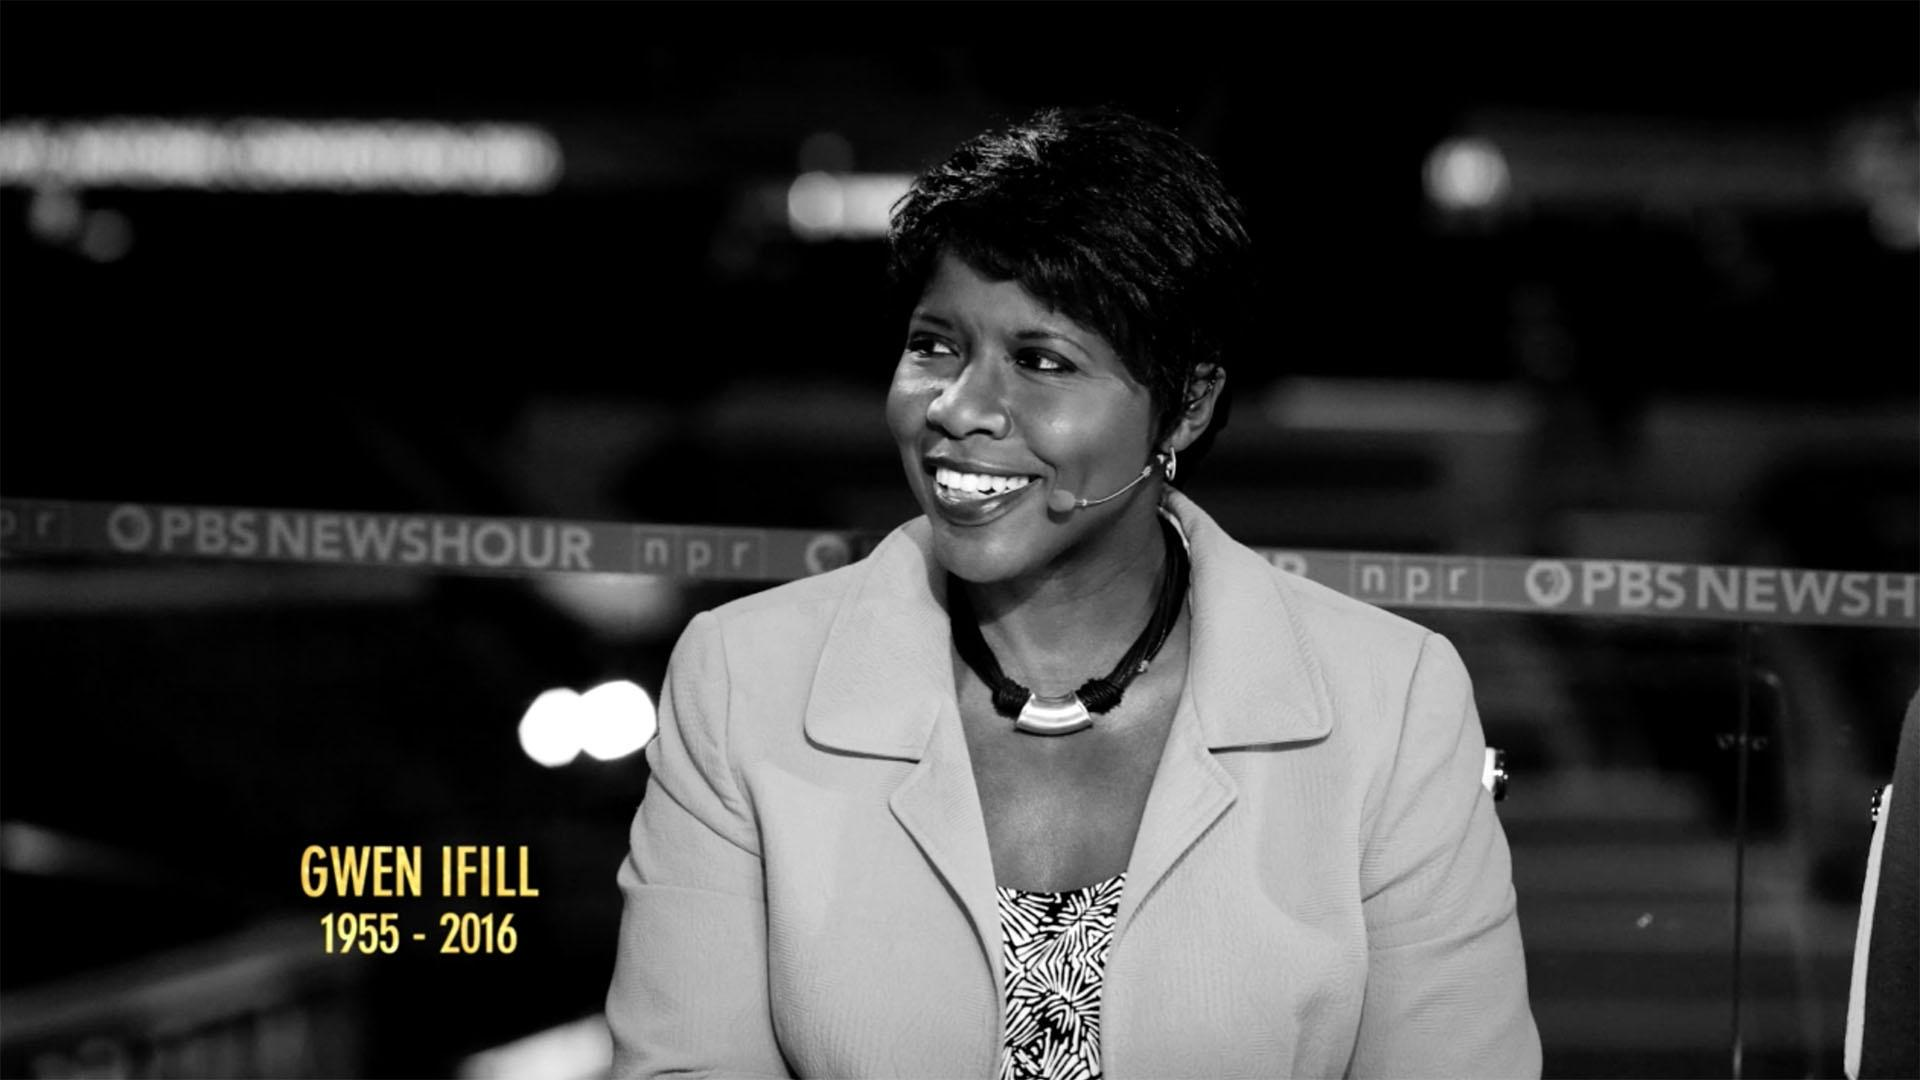 Gwen Ifill Remembrance